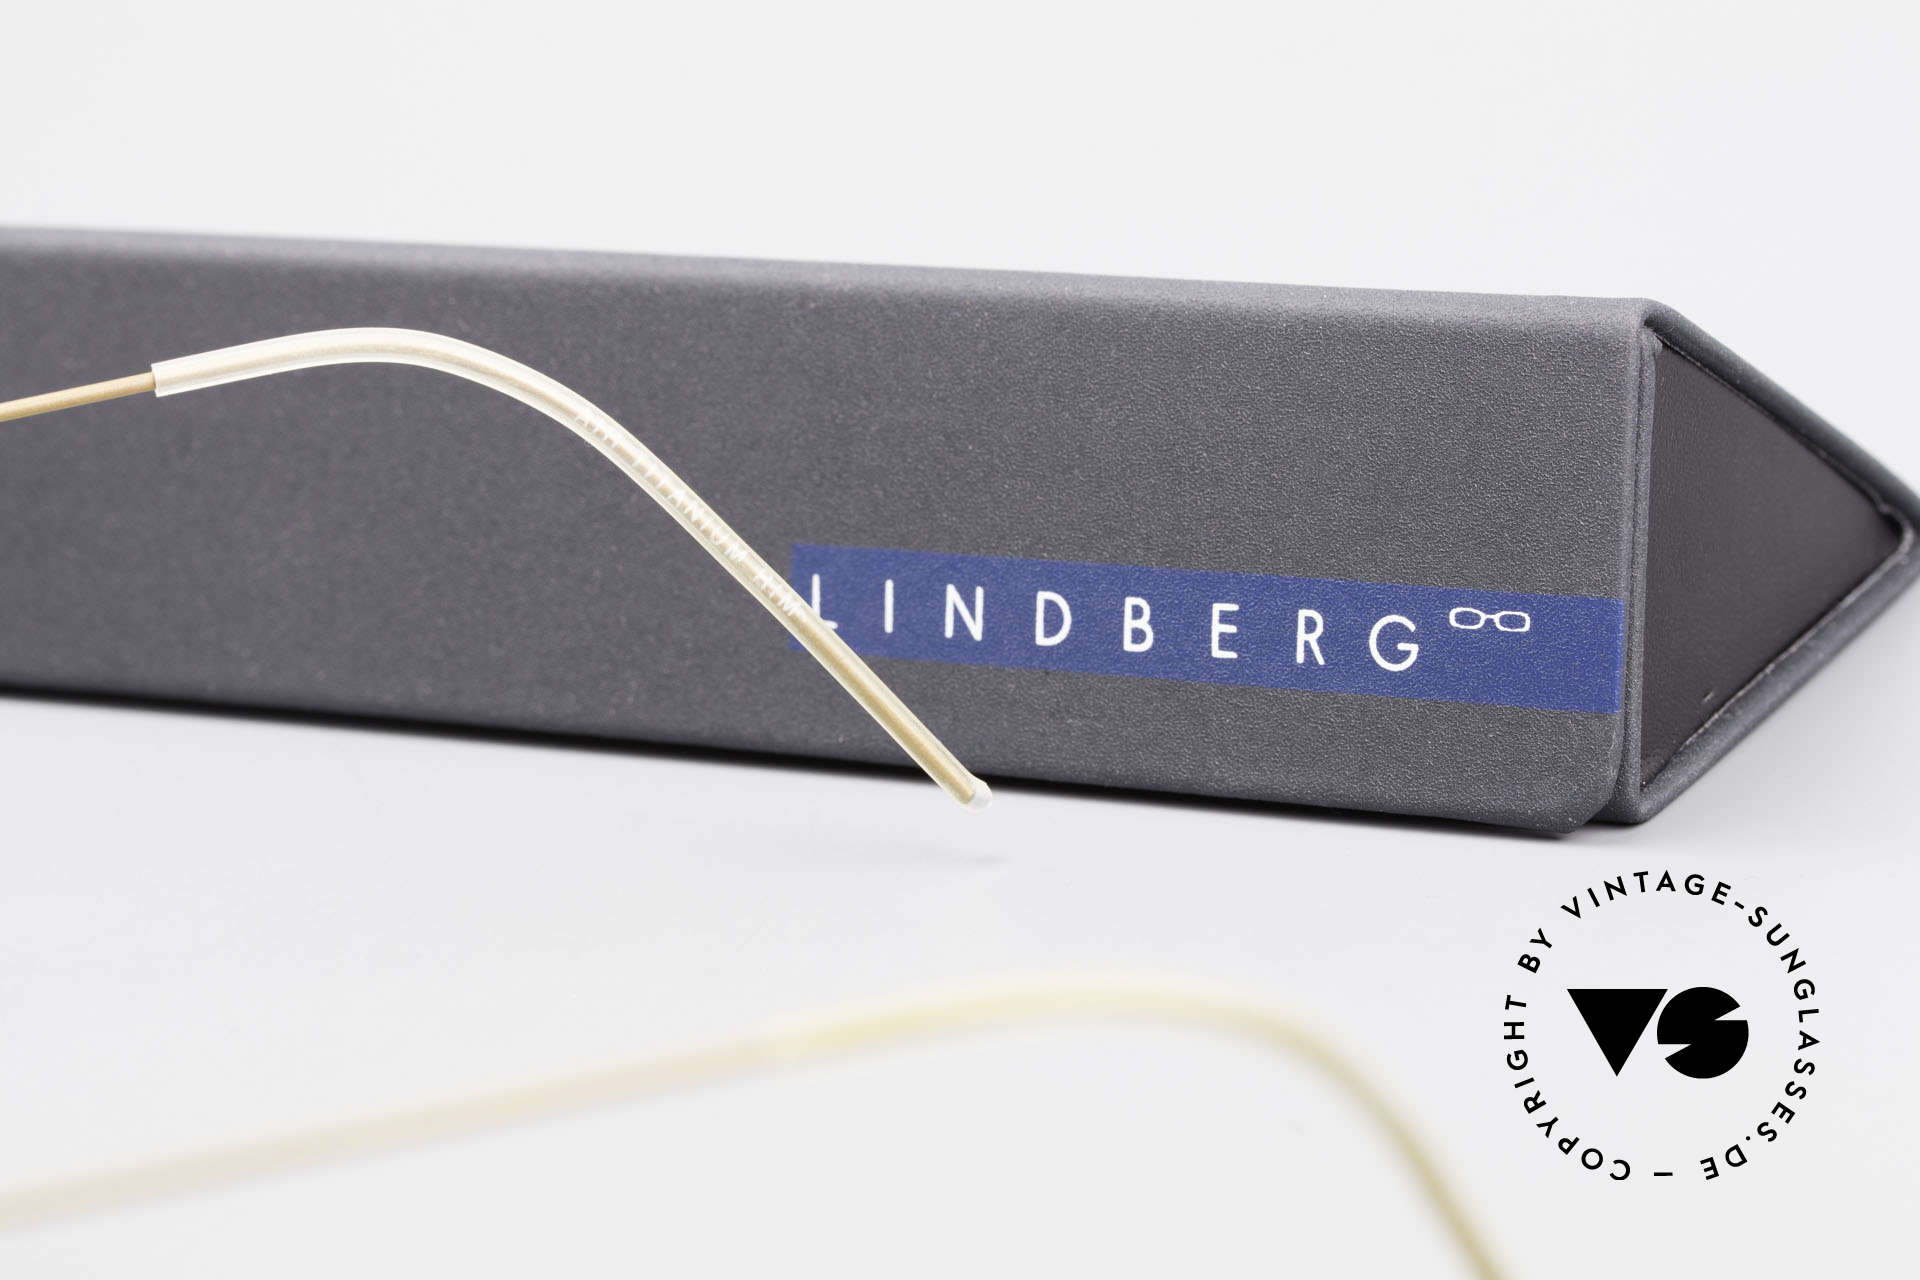 Lindberg Panto Air Titan Rim Titan Frame Acetate Inner Rim, simple & strong frame: free from screws, rivets & welds, Made for Men and Women